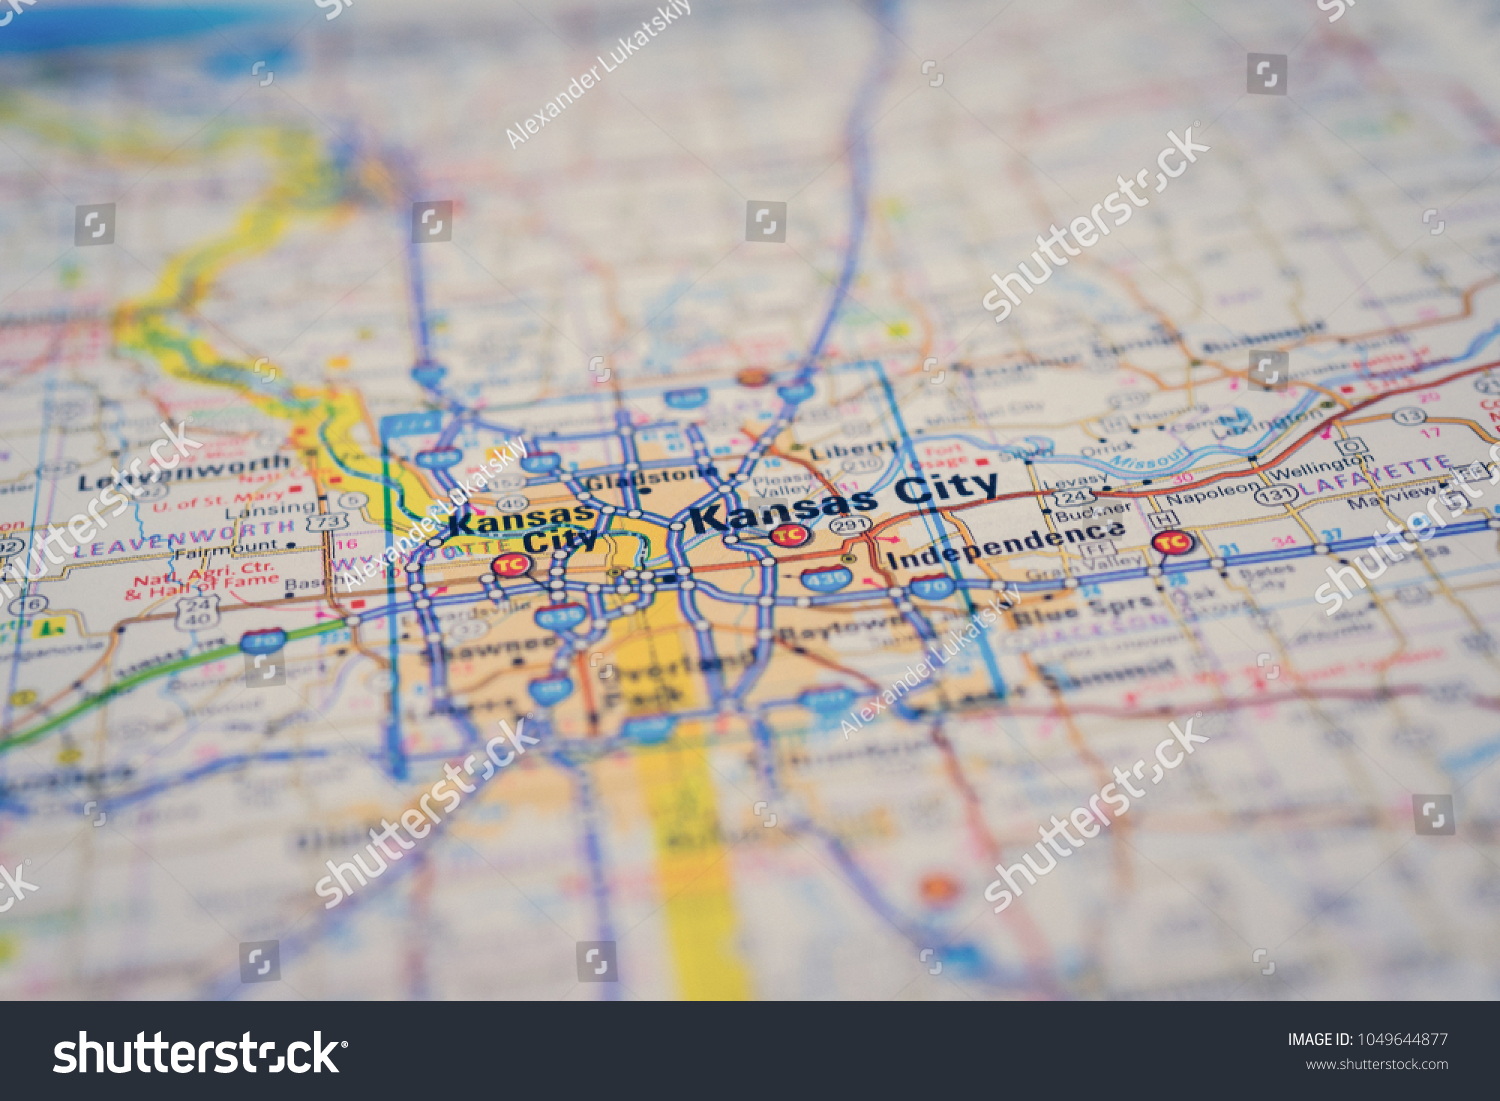 Kansas City On USA Map Stock Photo (Edit Now) 1049644877 - Shutterstock